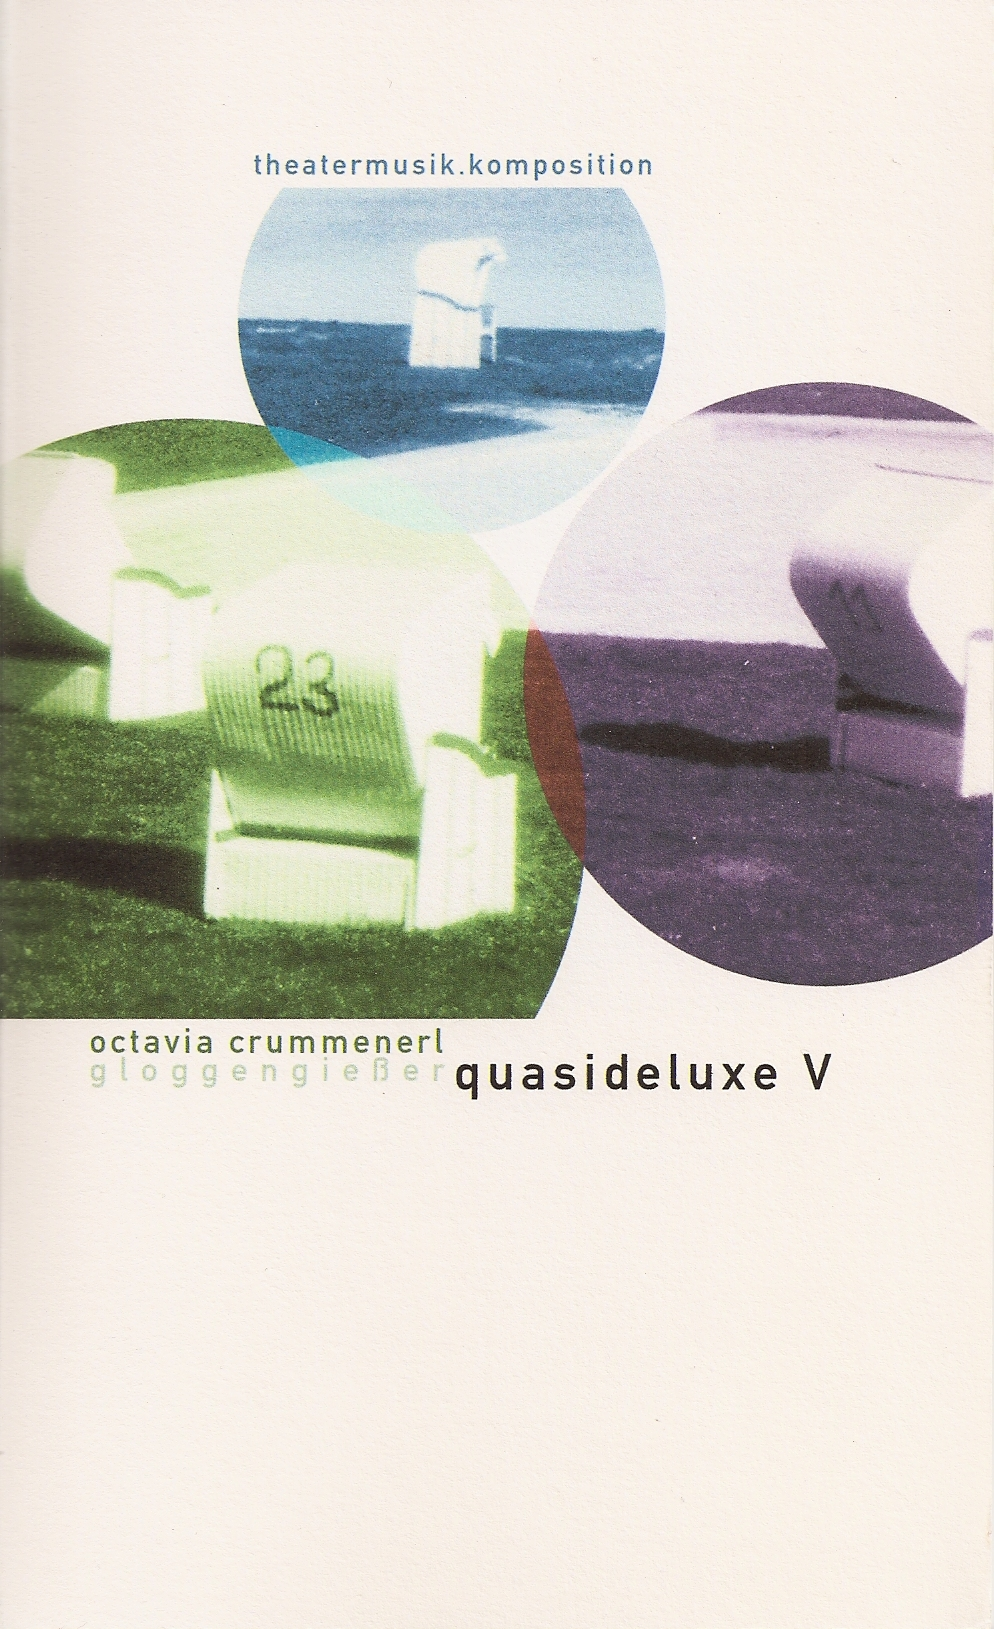 quasideluxe V cd cover